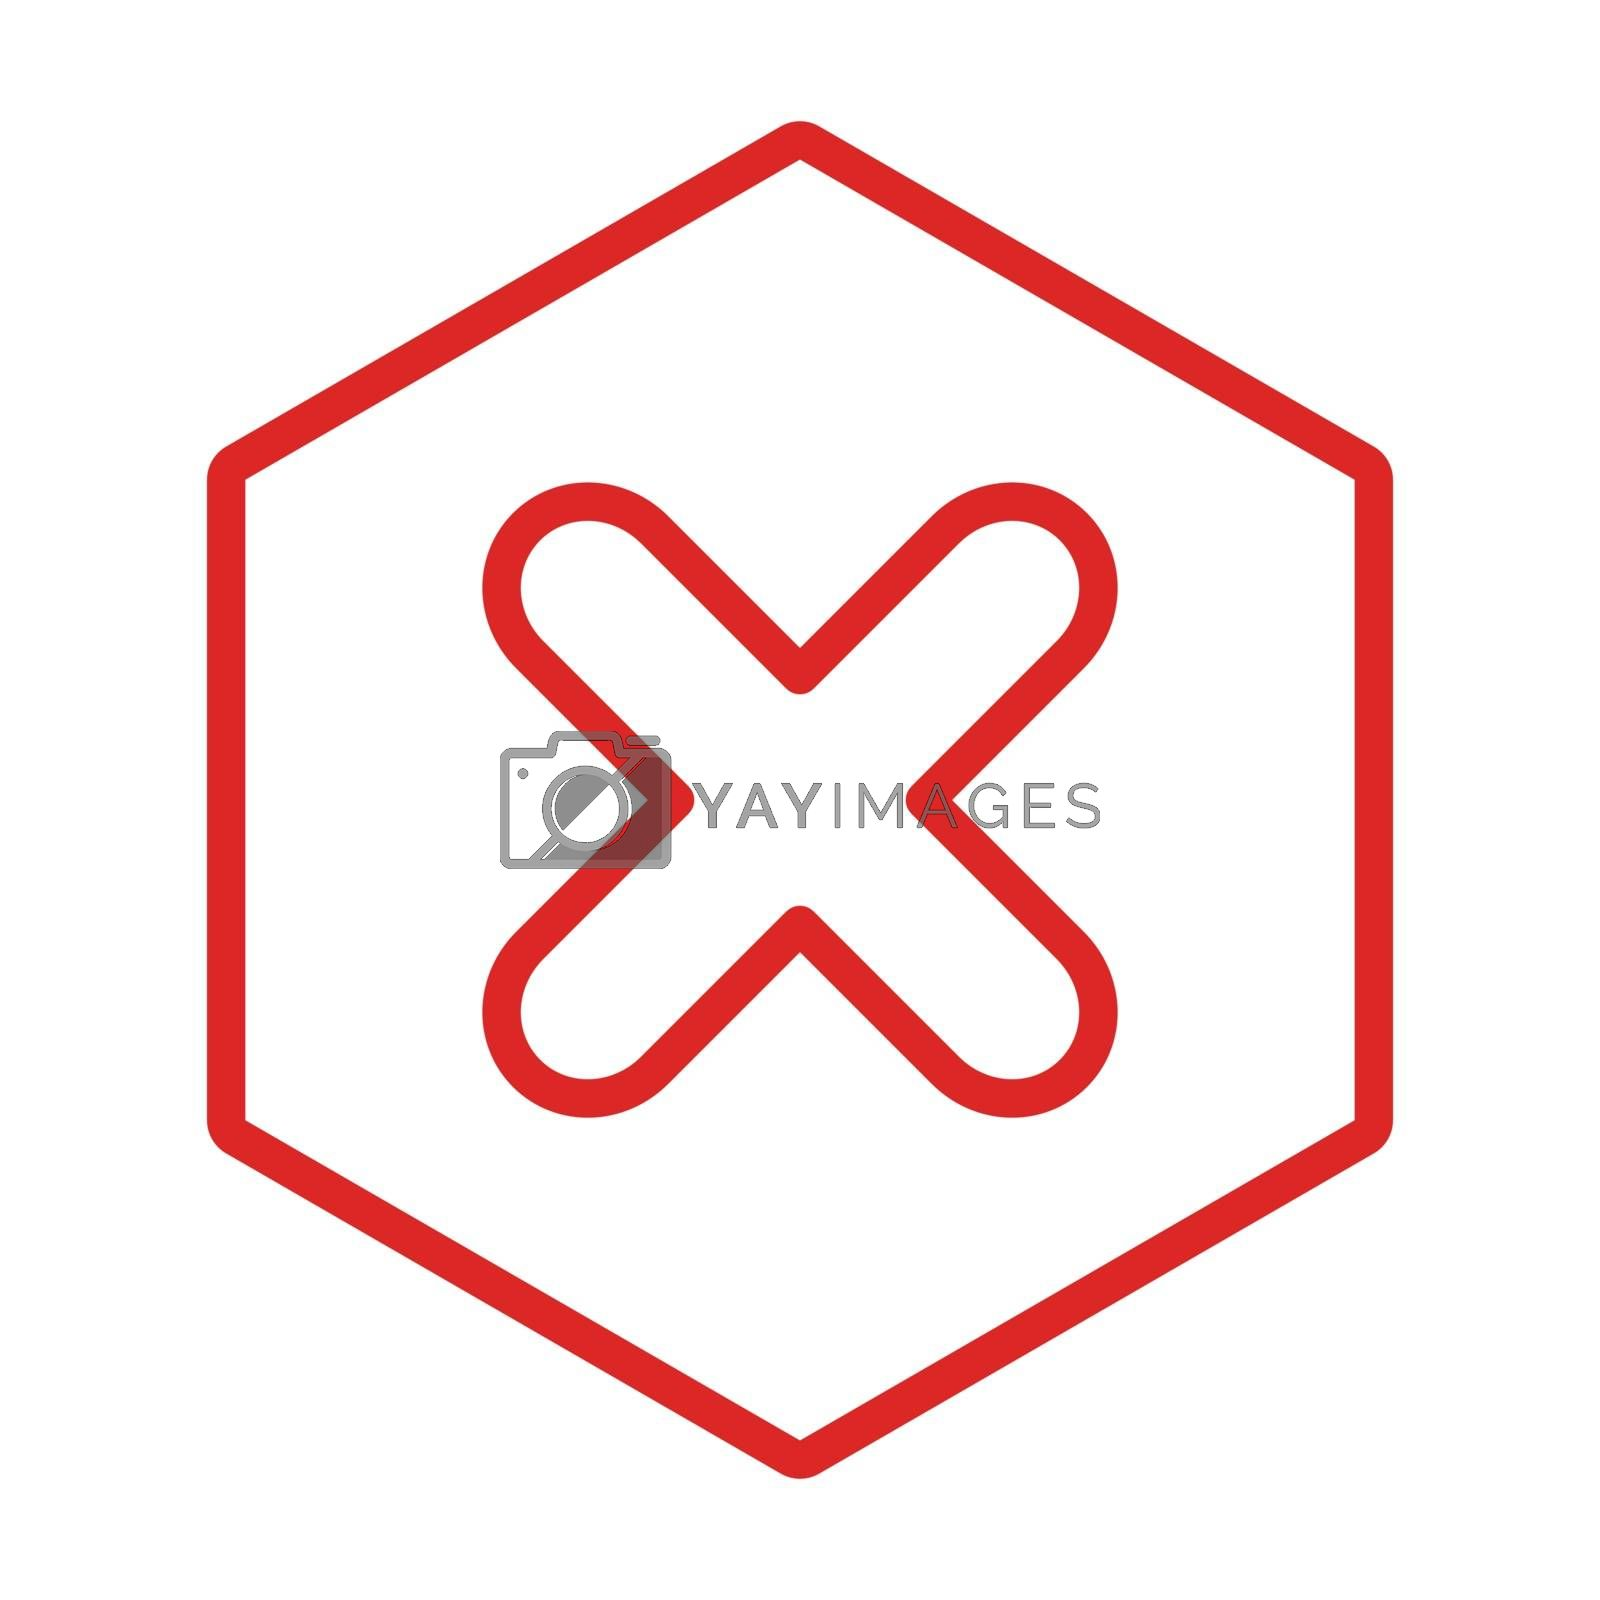 Wrong marks, Cross marks, Rejected, Disapproved, No, False, Not Ok, Wrong Choices, Task Completion, Voting. - vector mark symbols in red. Isolated icon. Flat style vector illustration.